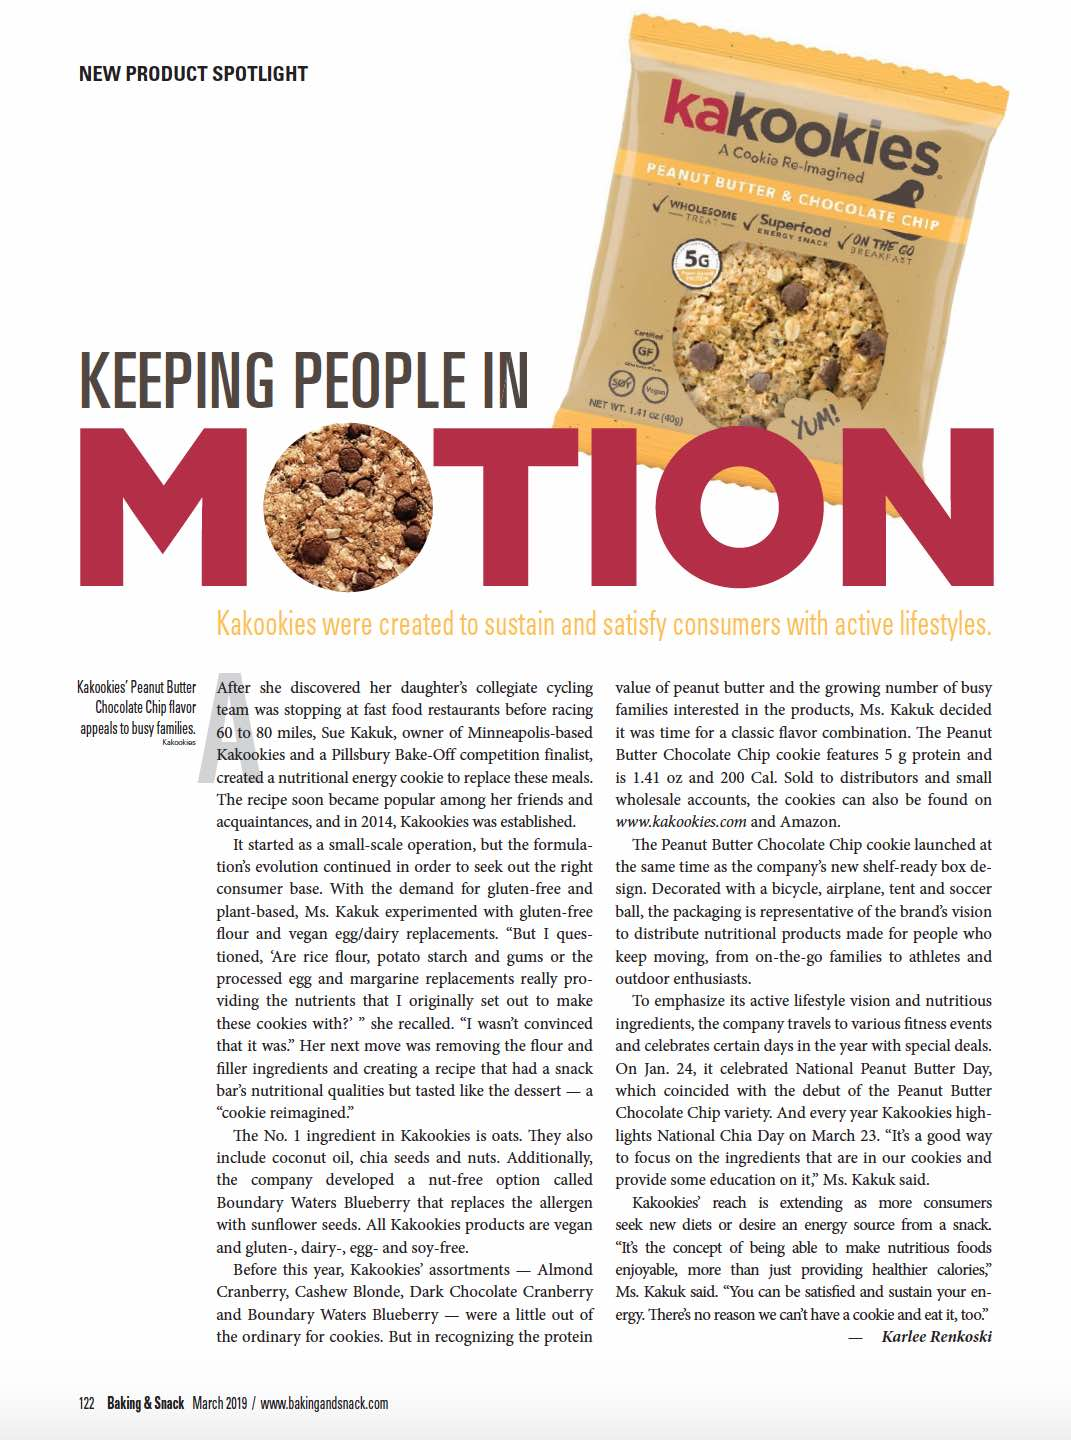 Kakookies featured in New Product Spotlight in Baking and Snack Magazine